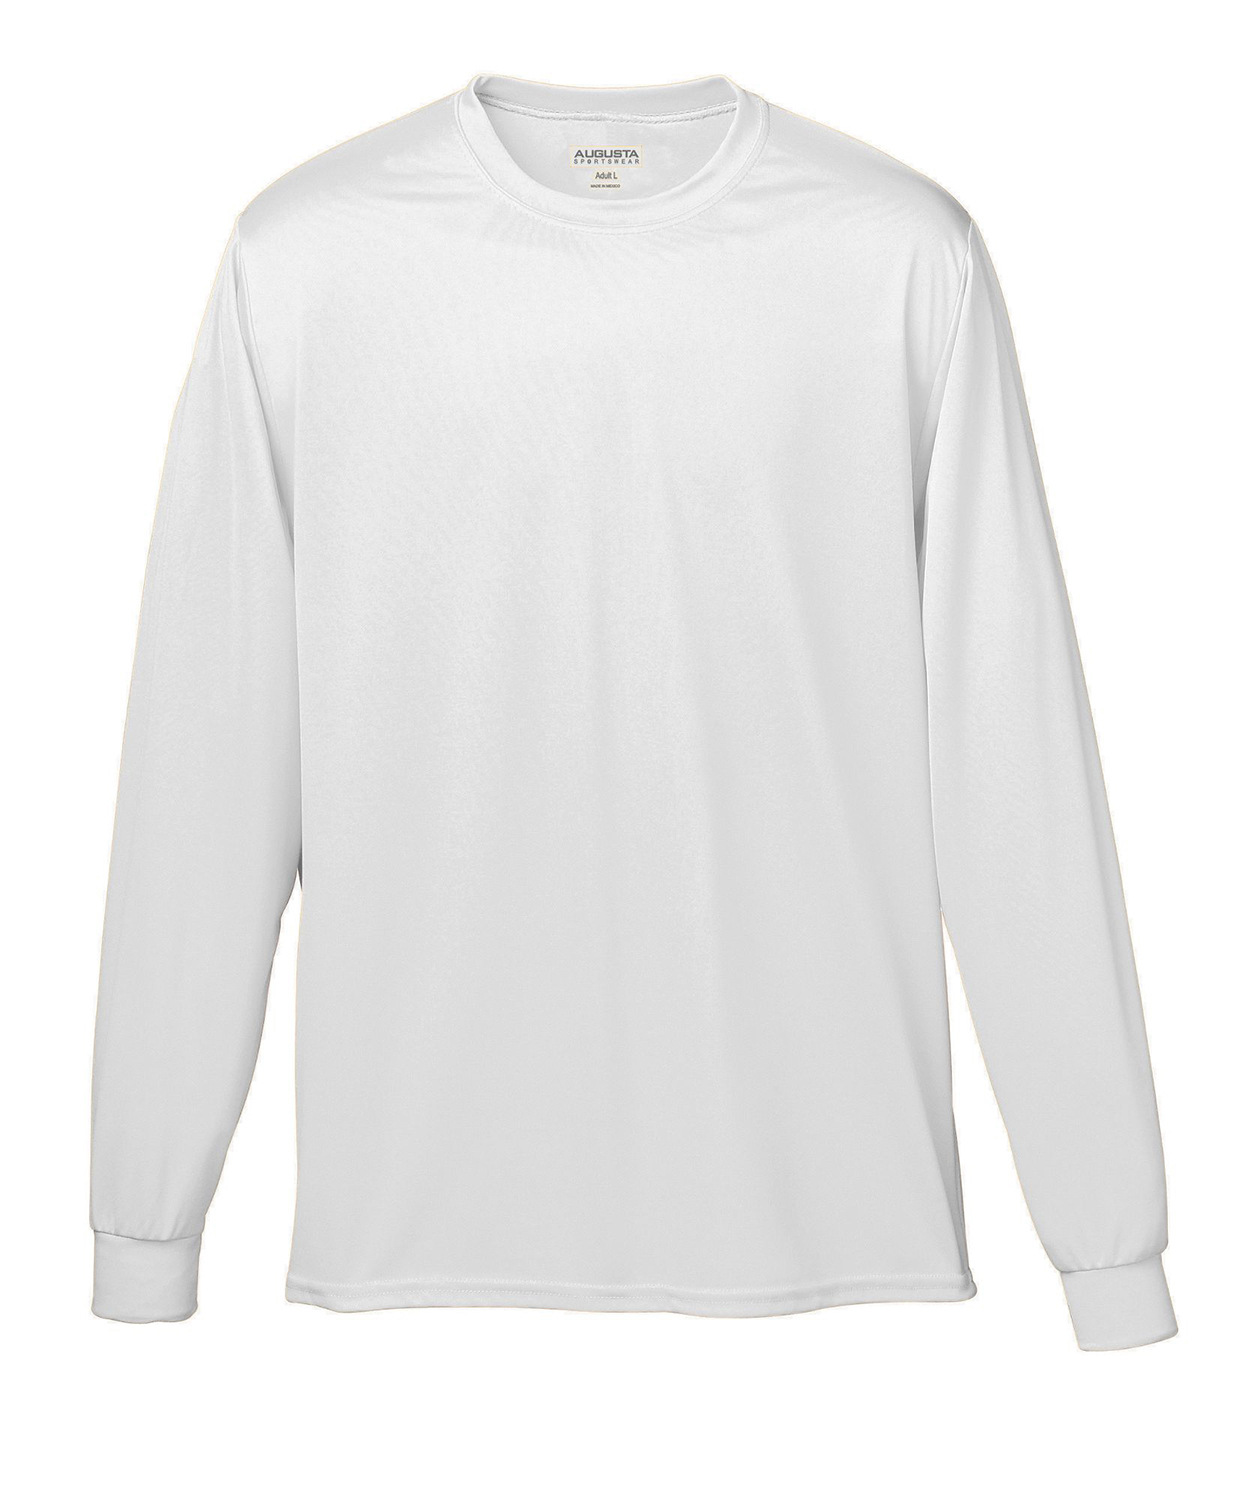 Adult Wicking Long-Sleeve T-Shirt